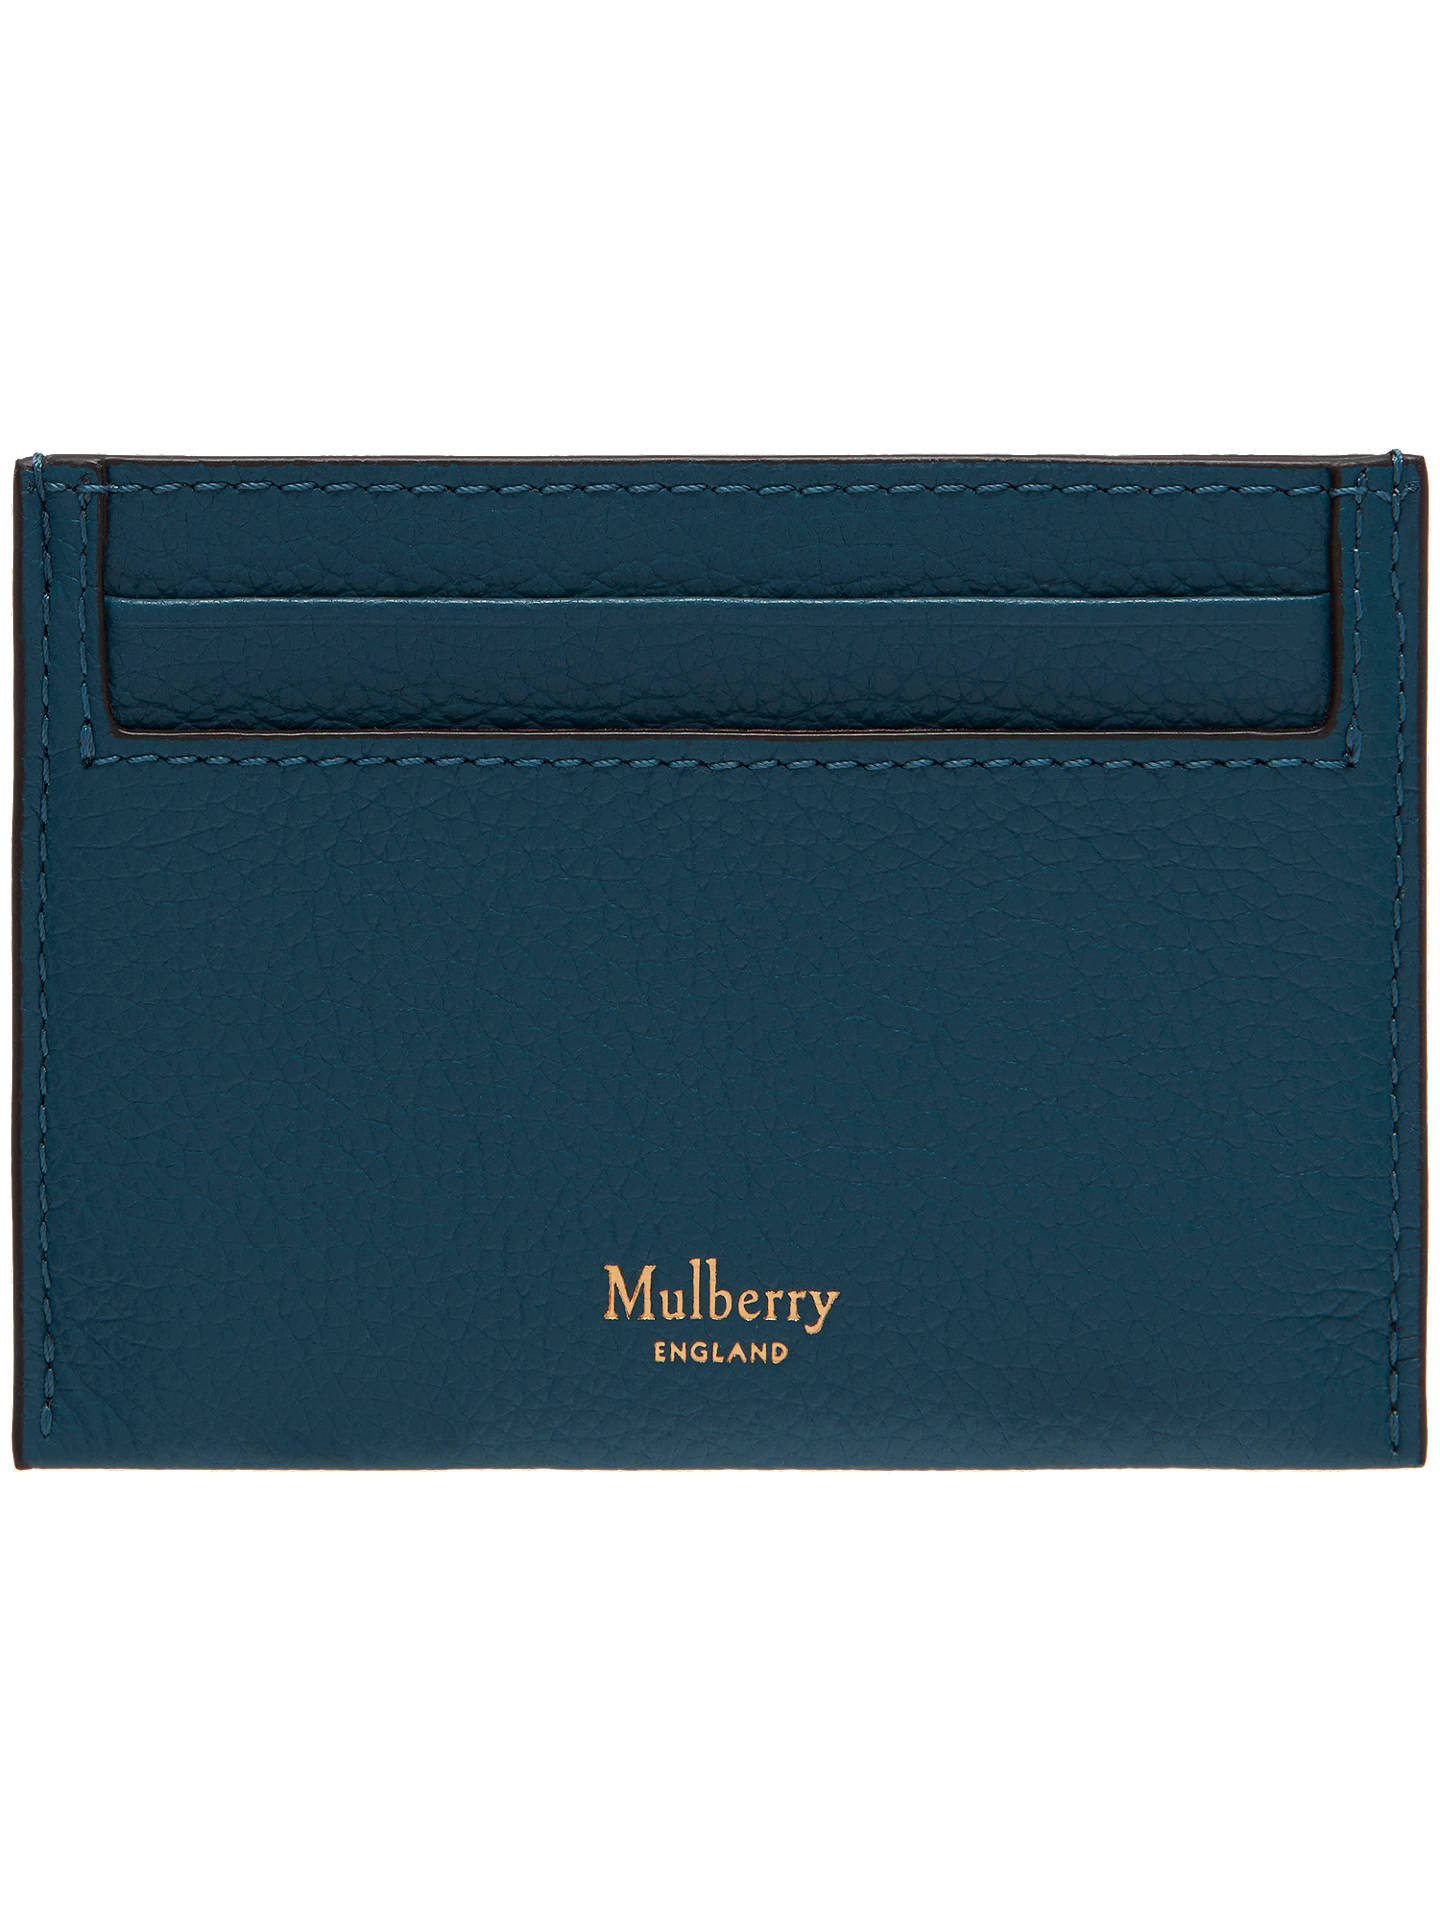 485db0a6c5b7 Mulberry Continental Small Classic Grain Leather Credit Card Slip ...